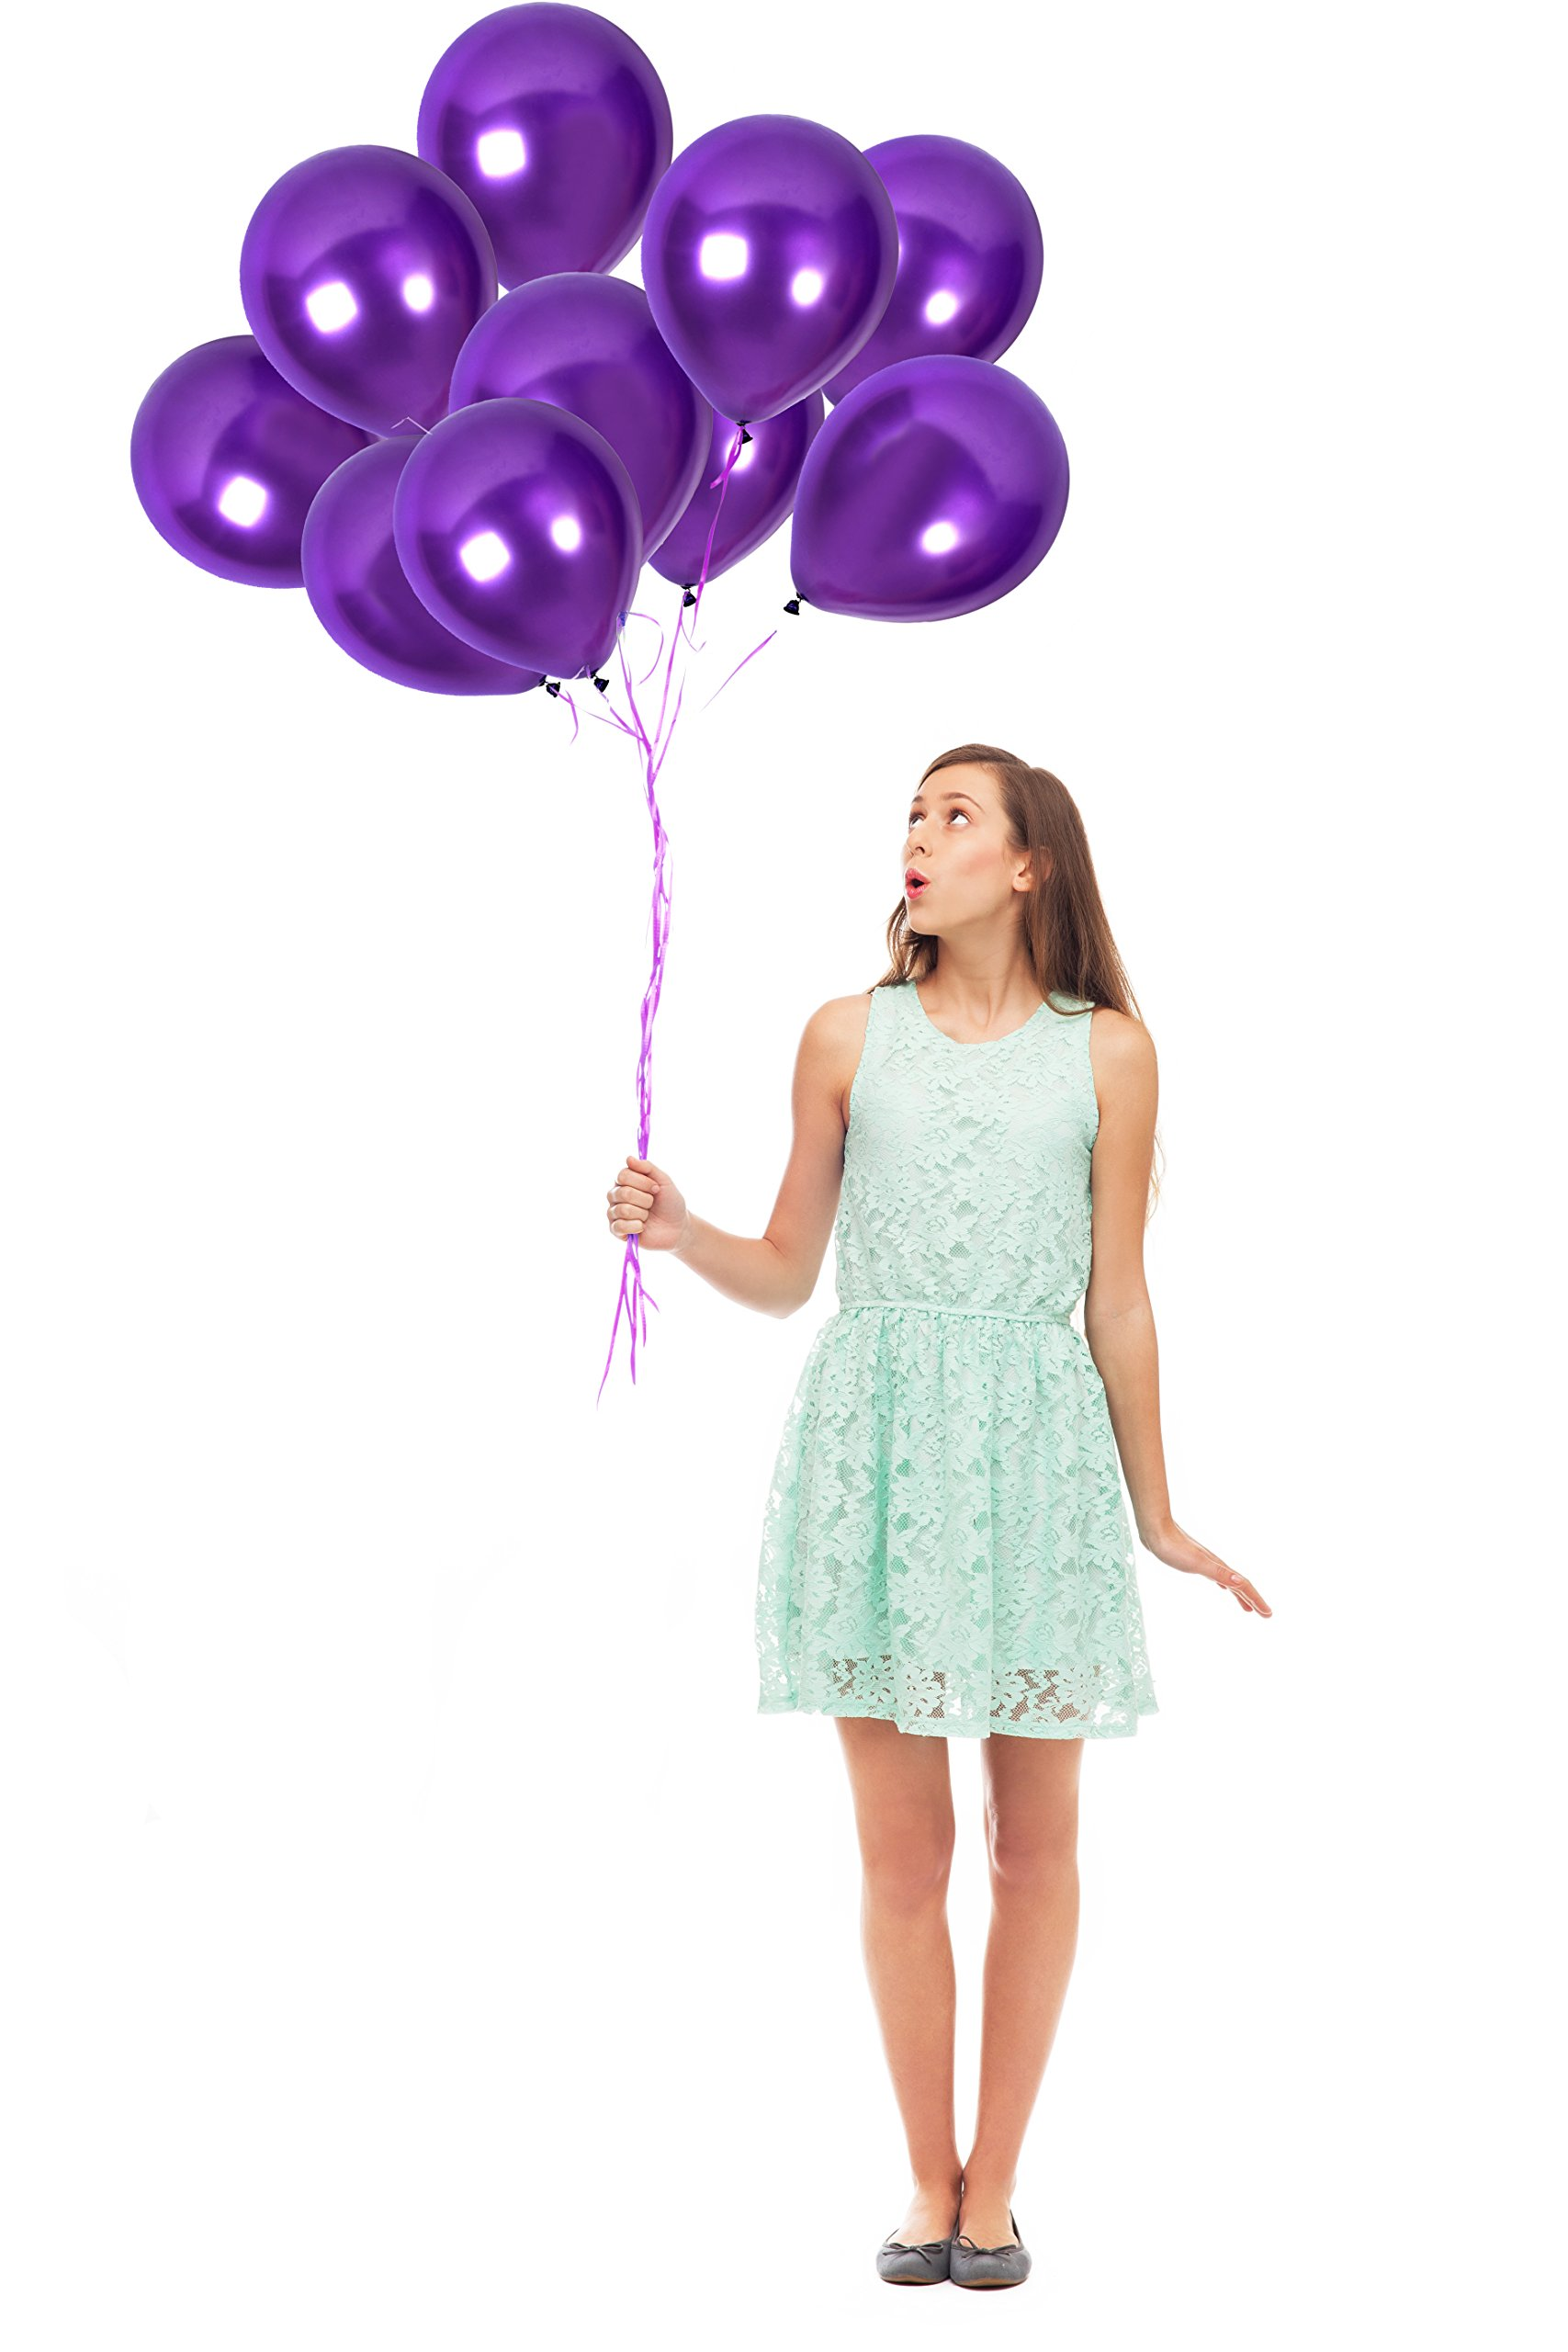 Dark Violet Purple Latex Balloons 12 Inch ft. 100pcs Thick Latex Metallic Balloons And 65 Yards Curling Ribbon Lavender Party Decor for Birthday Wedding Plum Bridal Baby Shower Decorations